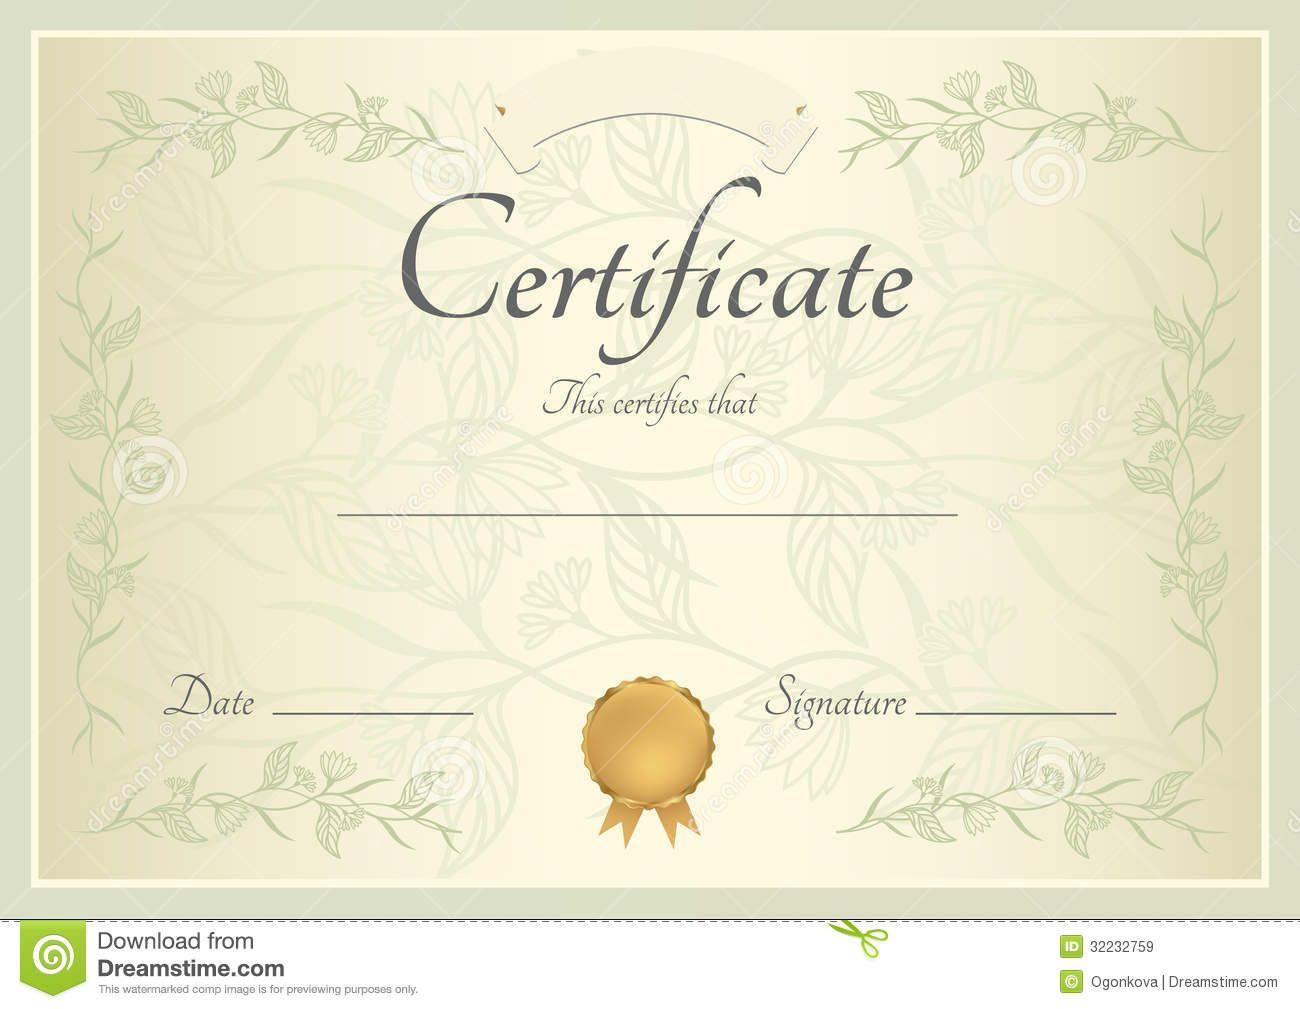 Business certificate designs google search certifiably business certificate designs google search 1betcityfo Image collections